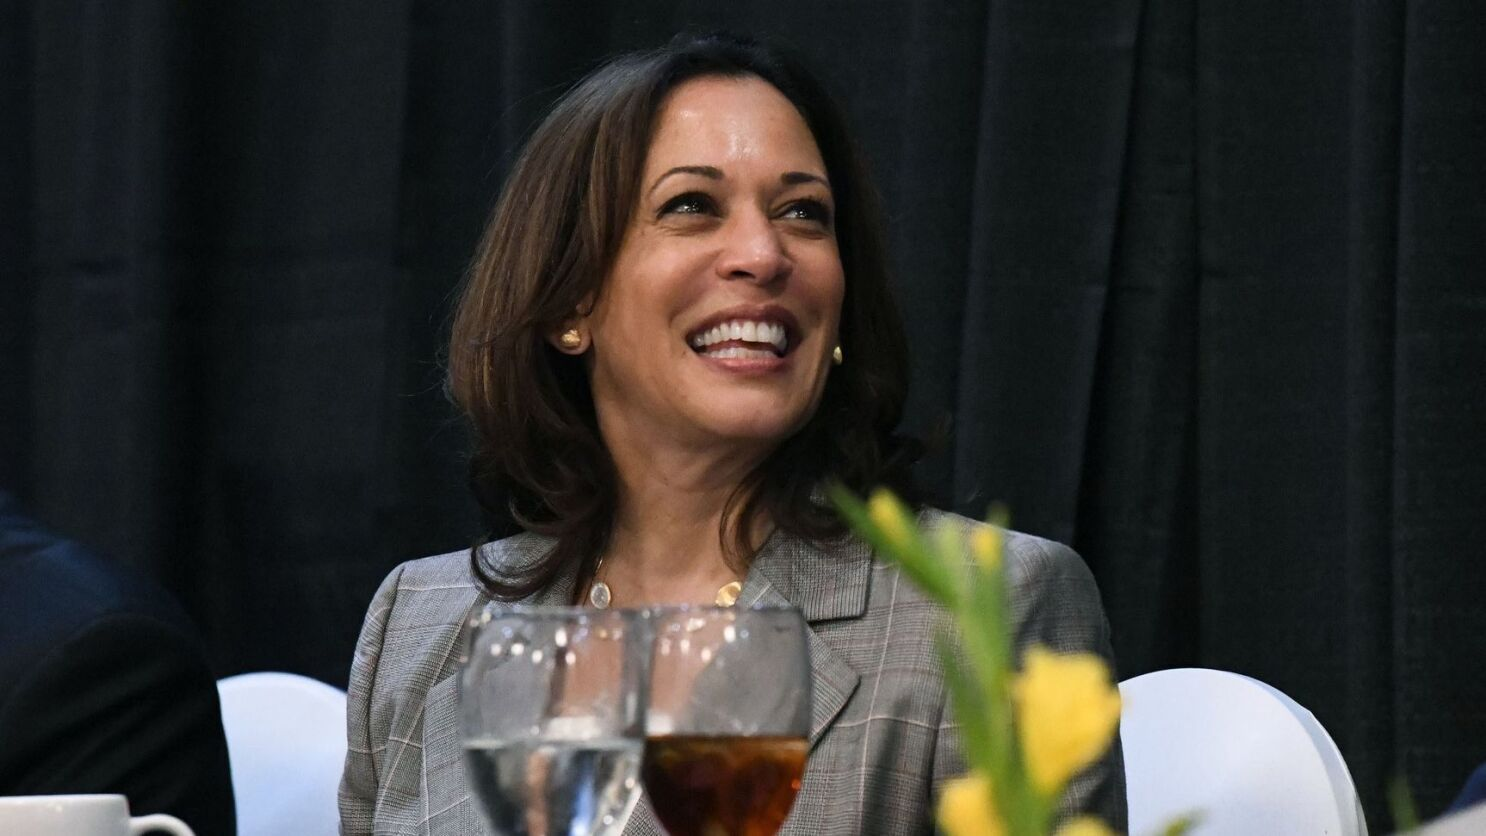 Kamala Harris Defends Her Record As Prosecutor It Matters Who Is In Those Rooms Los Angeles Times